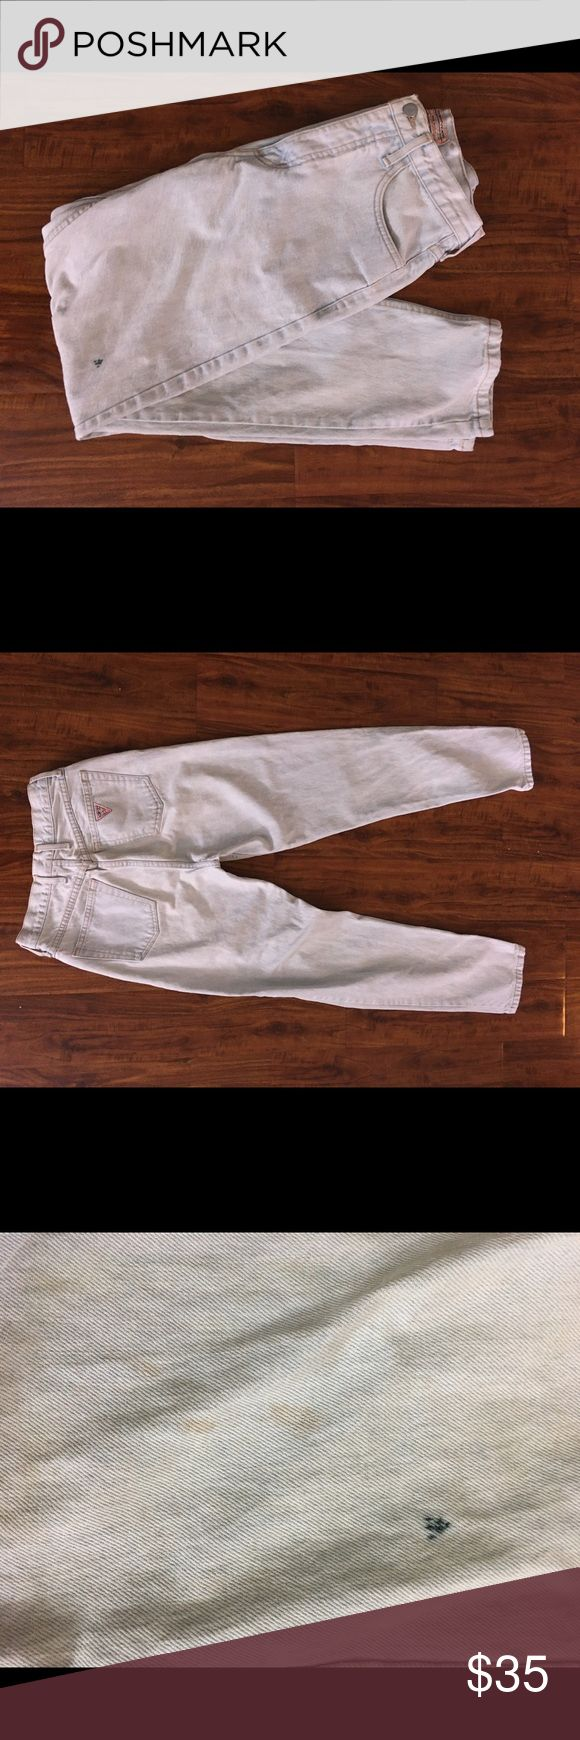 Vintage 90s guess Marciano light wash jeans Some light staining on leg, I have not tried to clean. Marked a size 30. Waist measures 13 inches across, inseam to waist 12 inches, 31 inch inseam. Guess by Marciano Pants